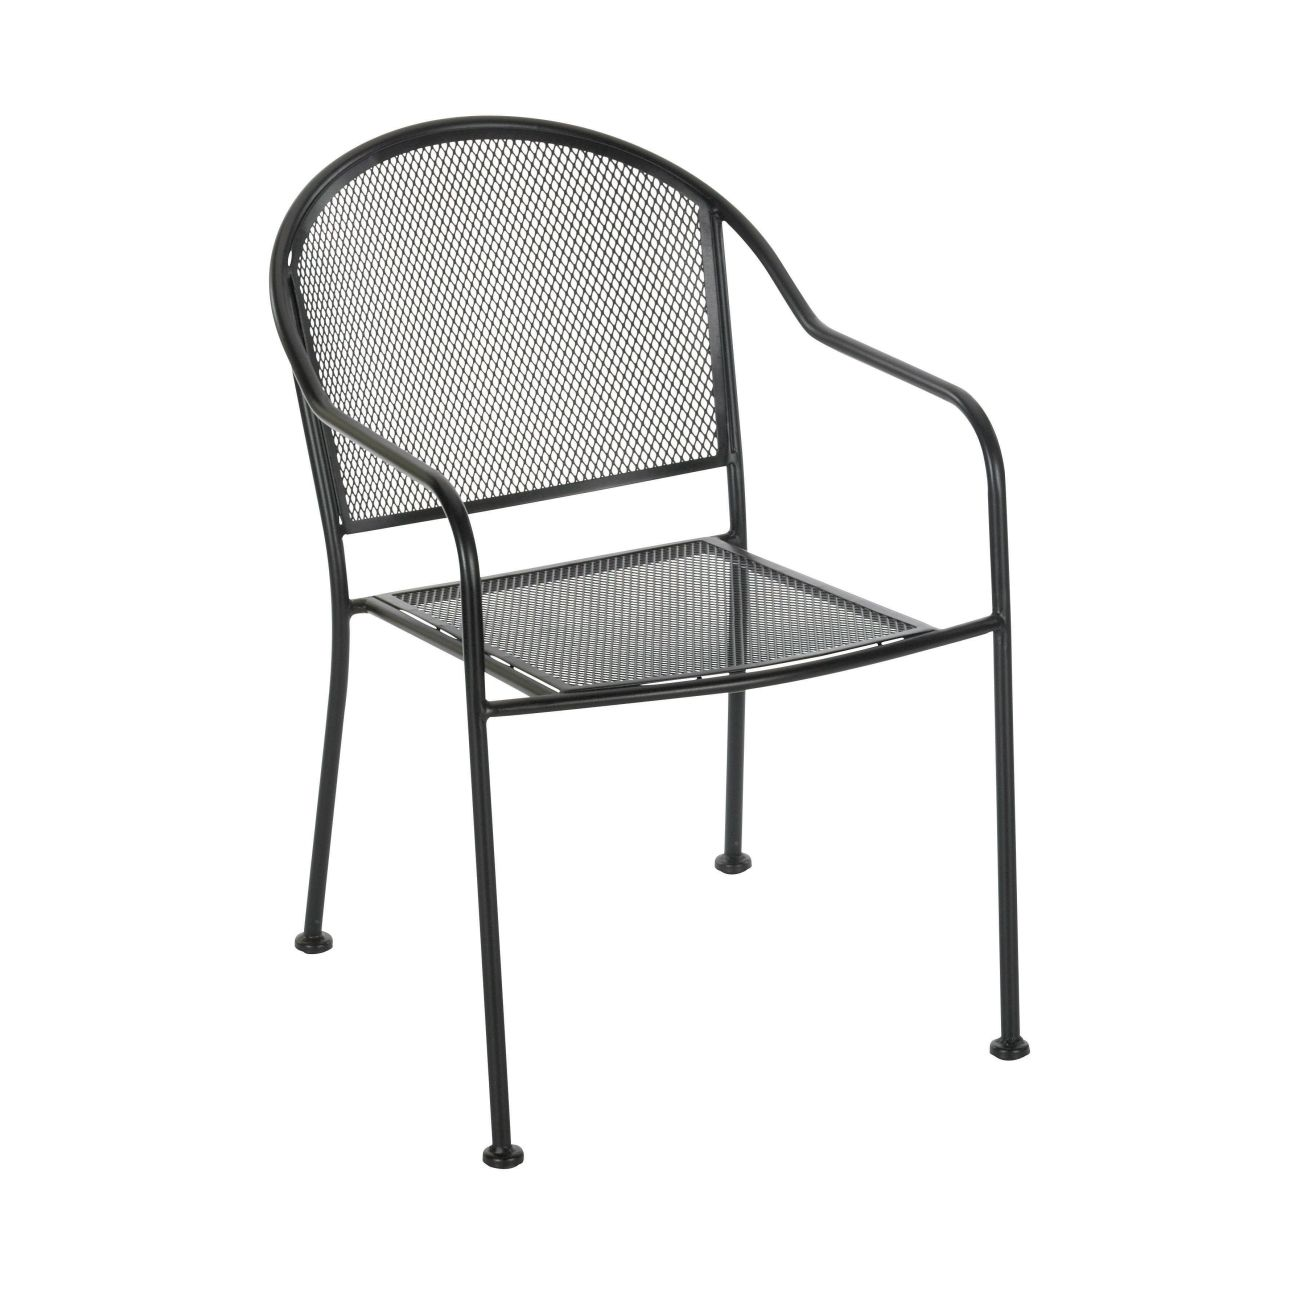 Living Accents Wrought Iron Mesh Chair - Outdoor Dining Chairs - Ace  Hardware . - Living Accents Wrought Iron Mesh Chair - Outdoor Dining Chairs